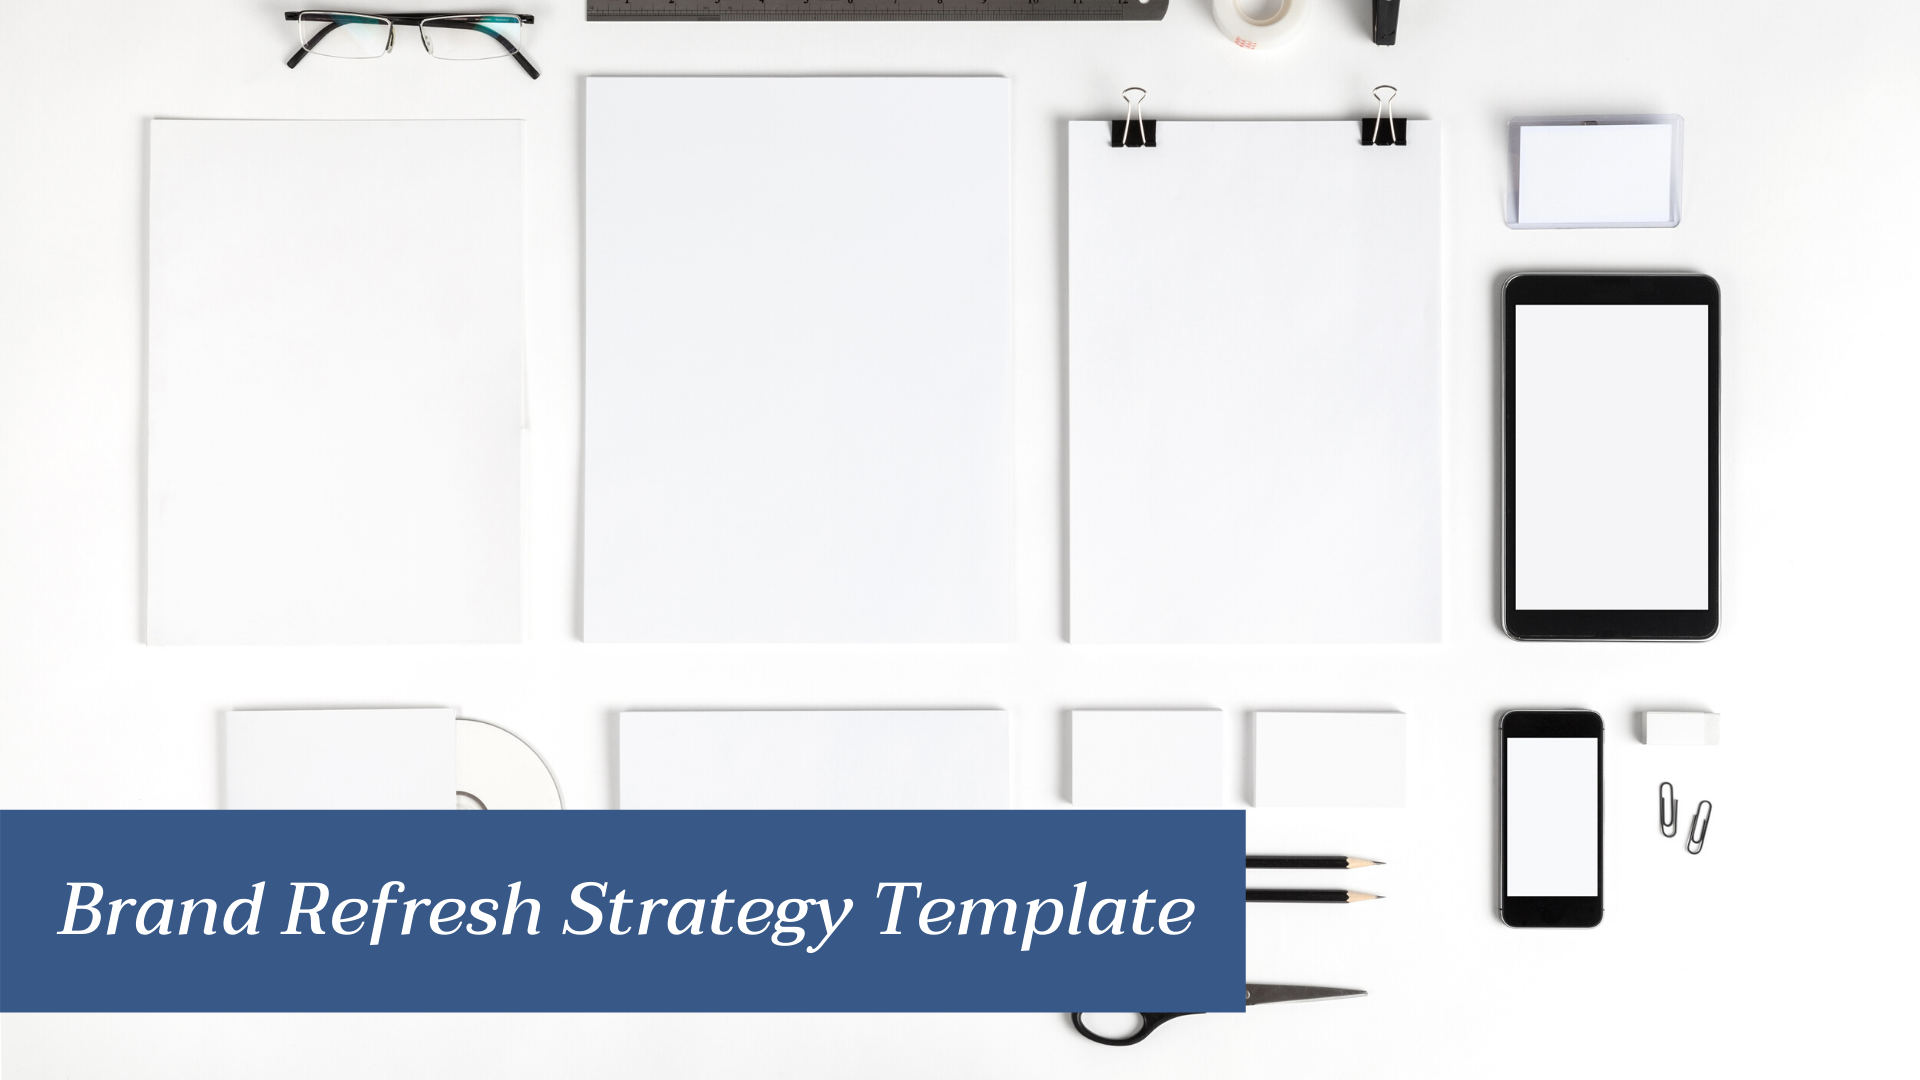 Brand Refresh Strategy Template